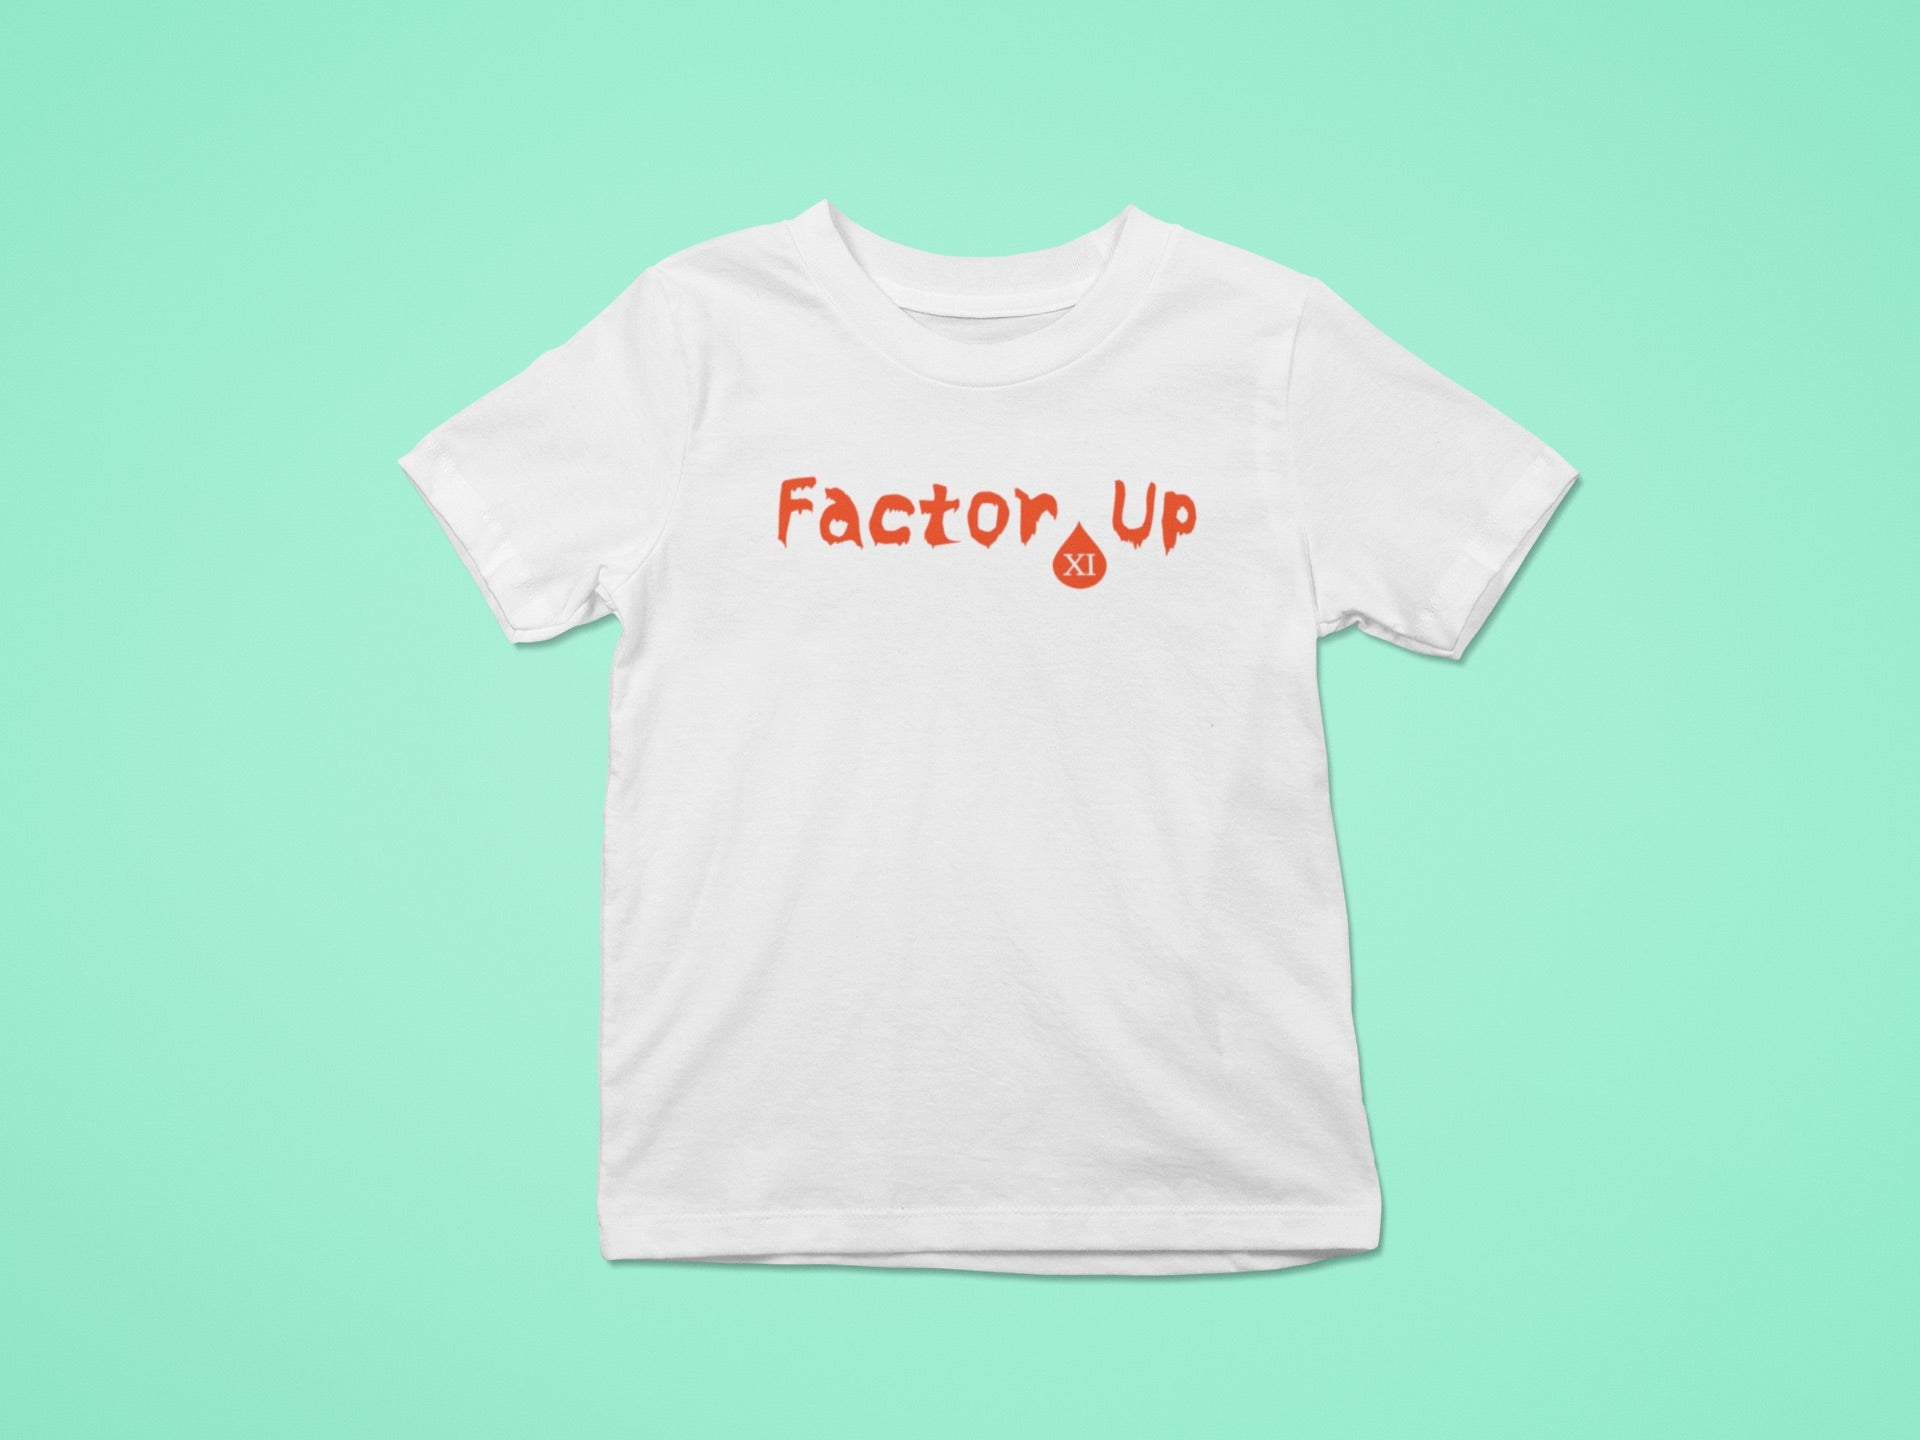 Kids Factor Up w/ Factor 11 Shirt